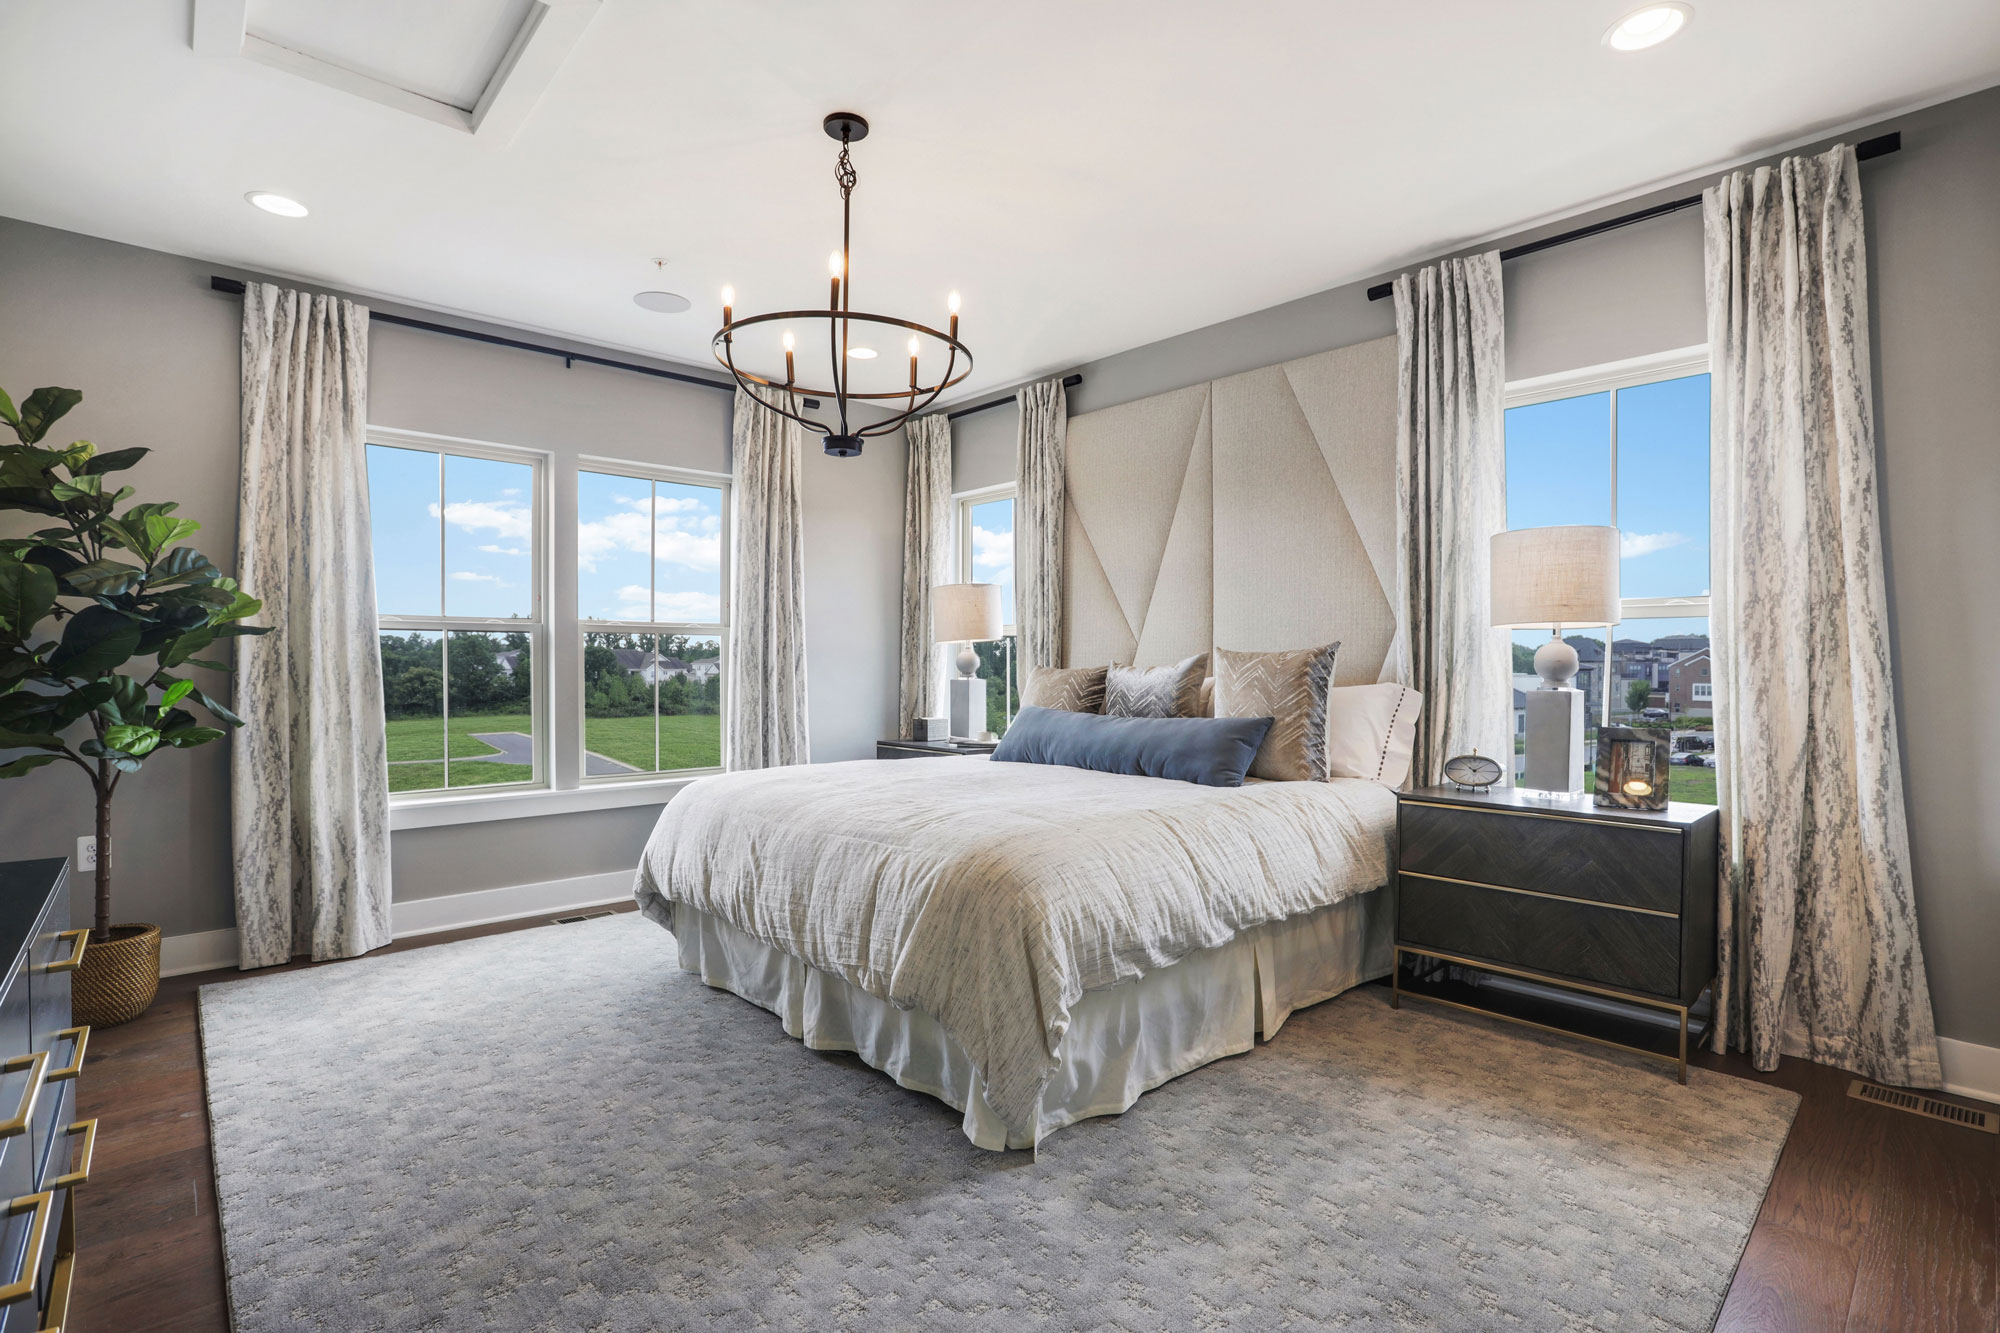 Bedrooms, Elevator Townhomes in Gaithersburg, MD, Crown by Craftmark Homes